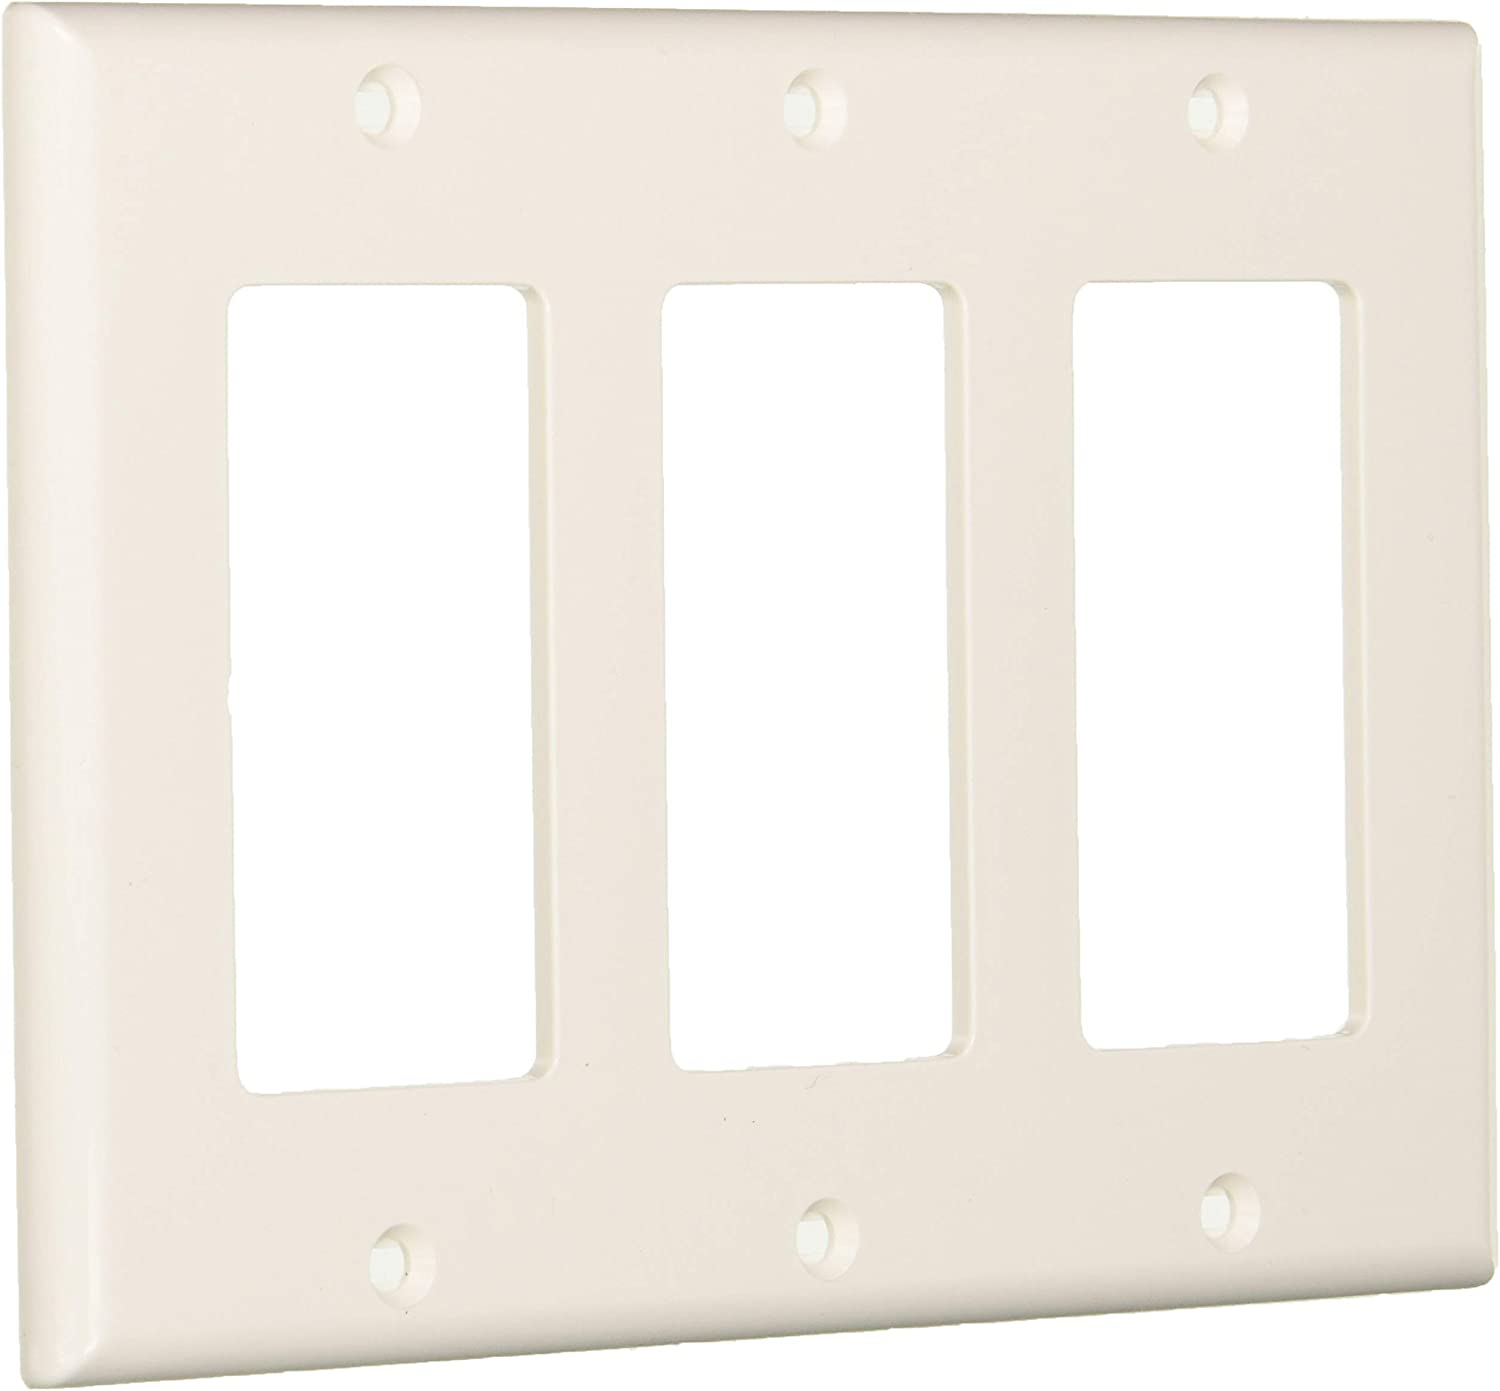 Leviton 80411-NW 3-Gang Decora/GFCI Device Decora Wallplate, Standard Size, Thermoset, Device Mount, White, 10-Pack